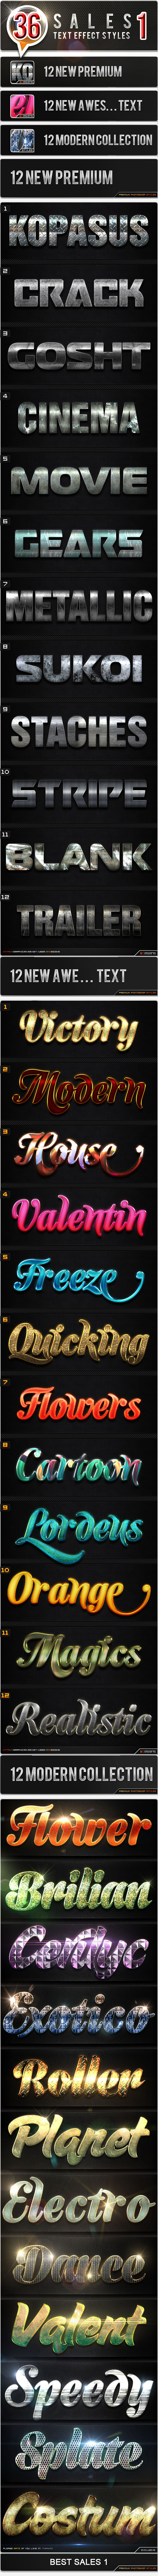 36 Sales_1 Bundle - Text Effects Styles